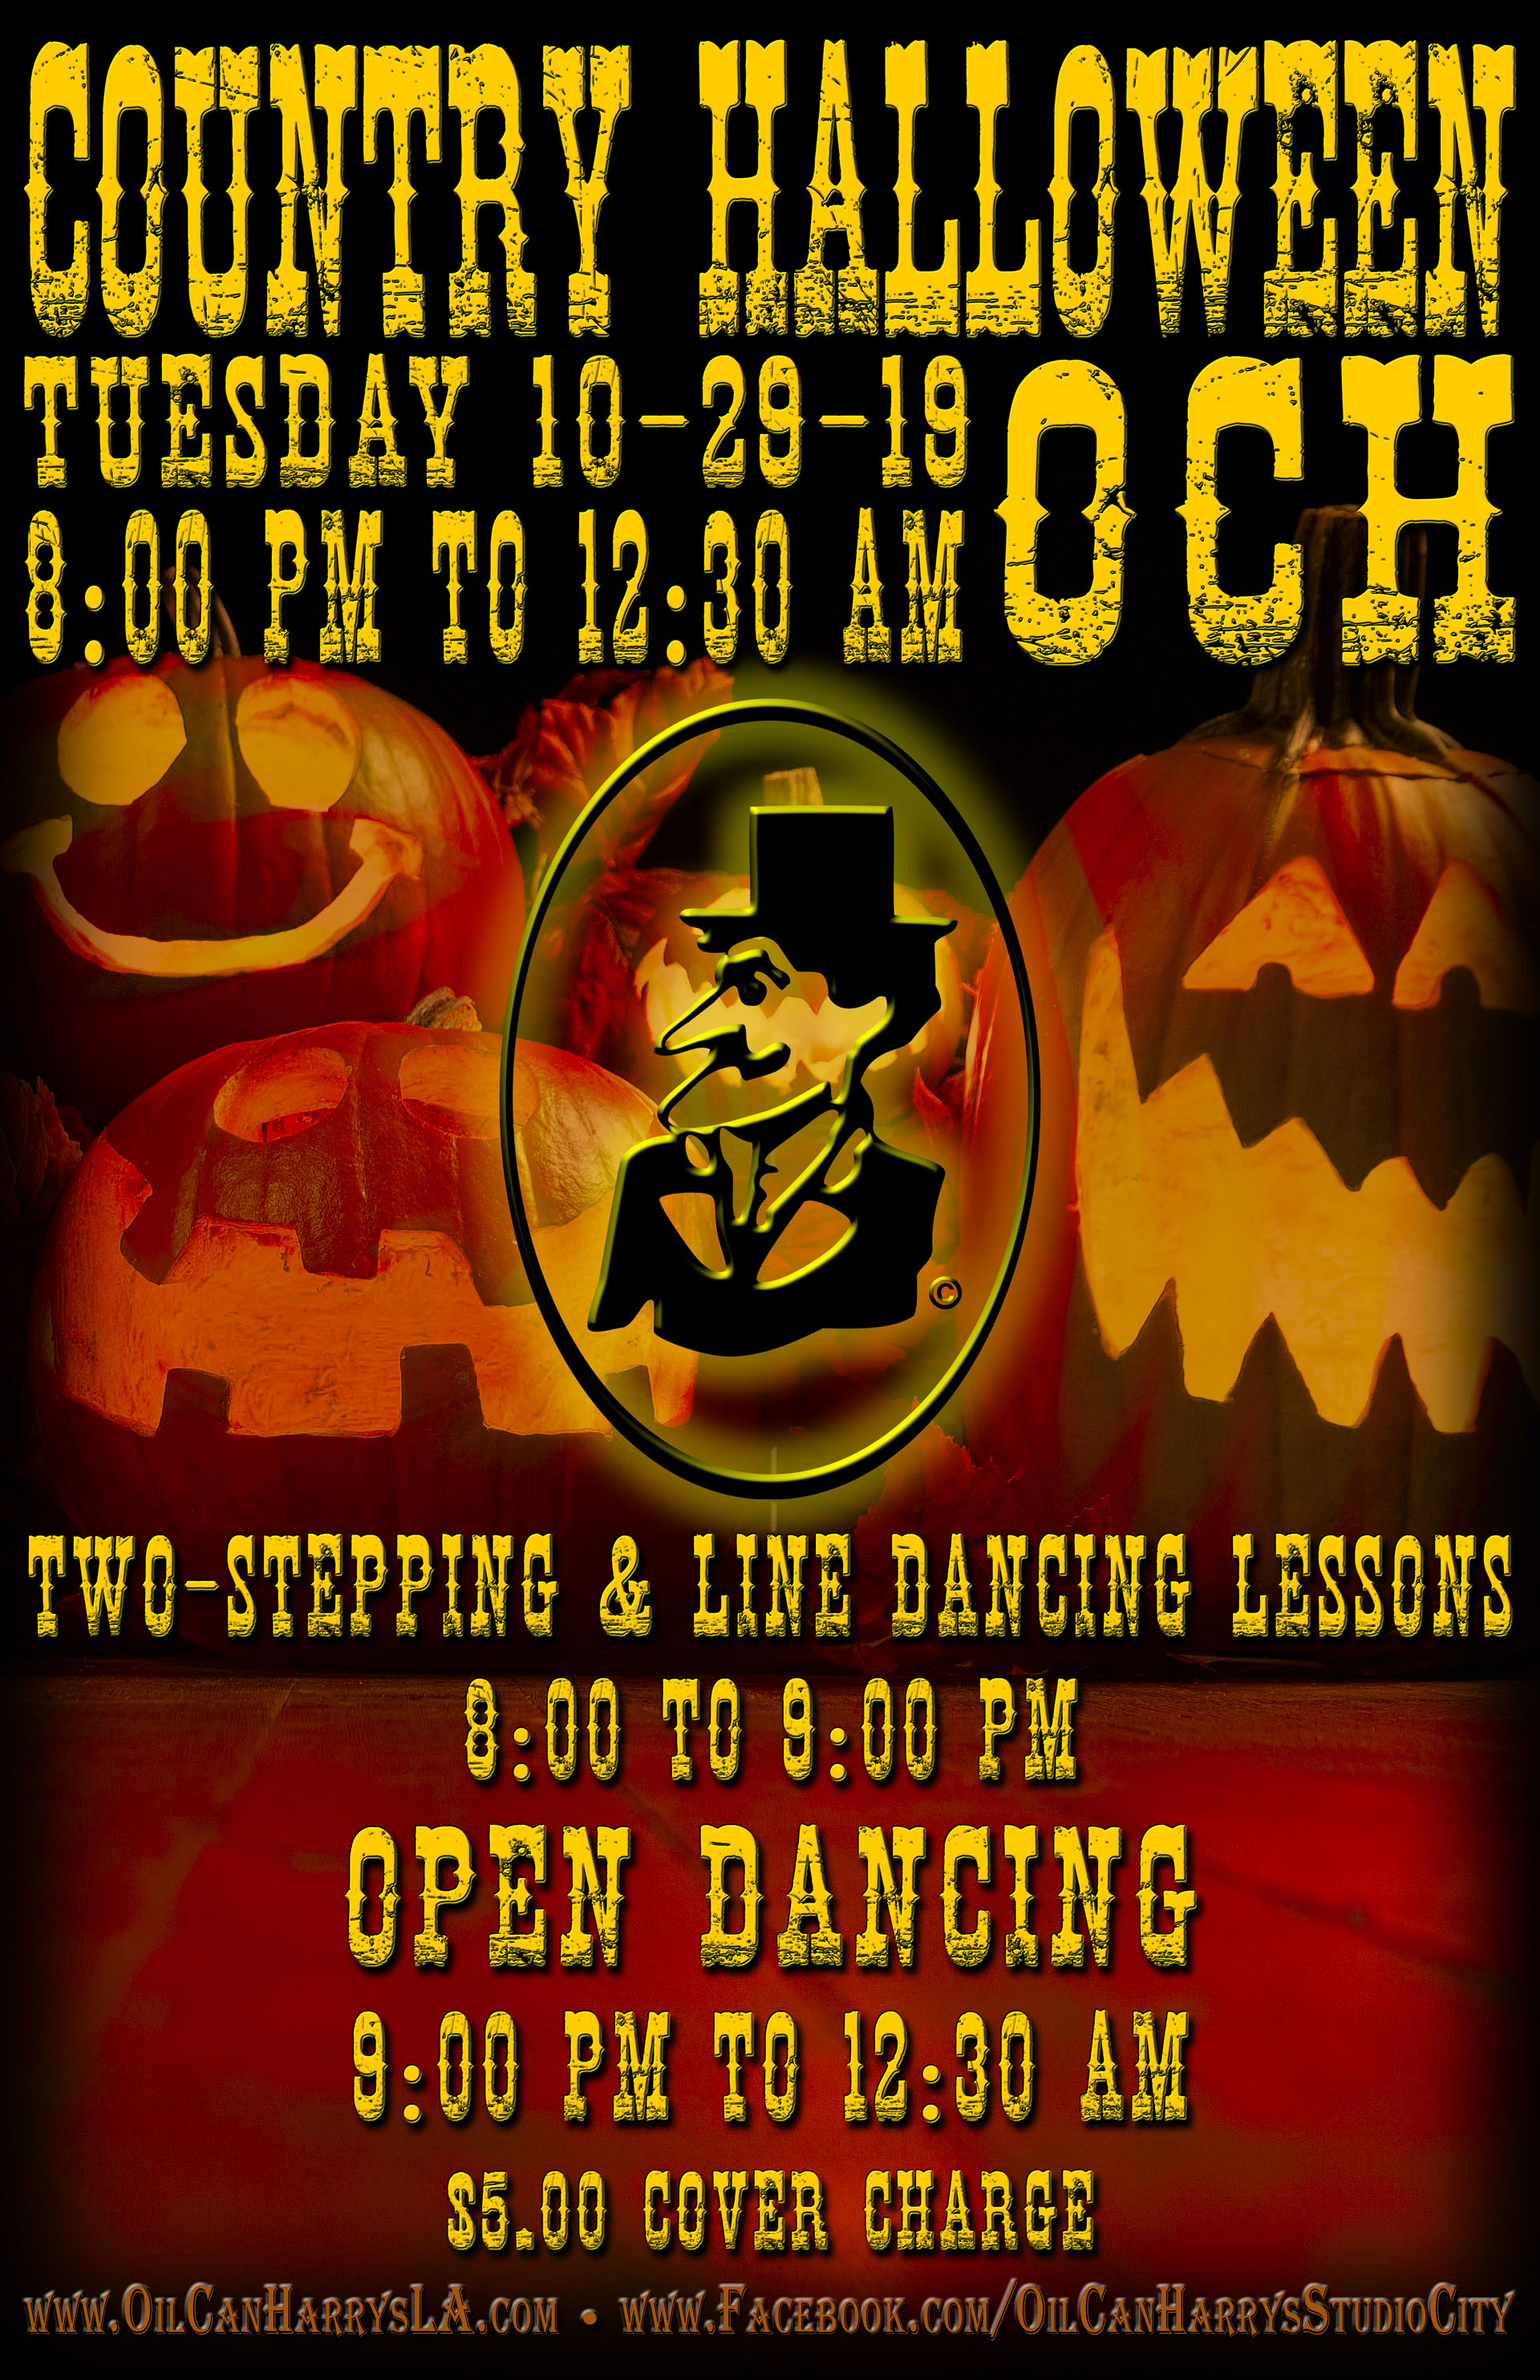 Country Halloween Night at Oil Can Harry's: Tuesday, October 29, 2018! Two-Stepping and Line Dance Lessons: 8:00 - 9:00 PM! Open Dancing: 9:00 PM - 12:30 AM! $5.00 Cover Charge.